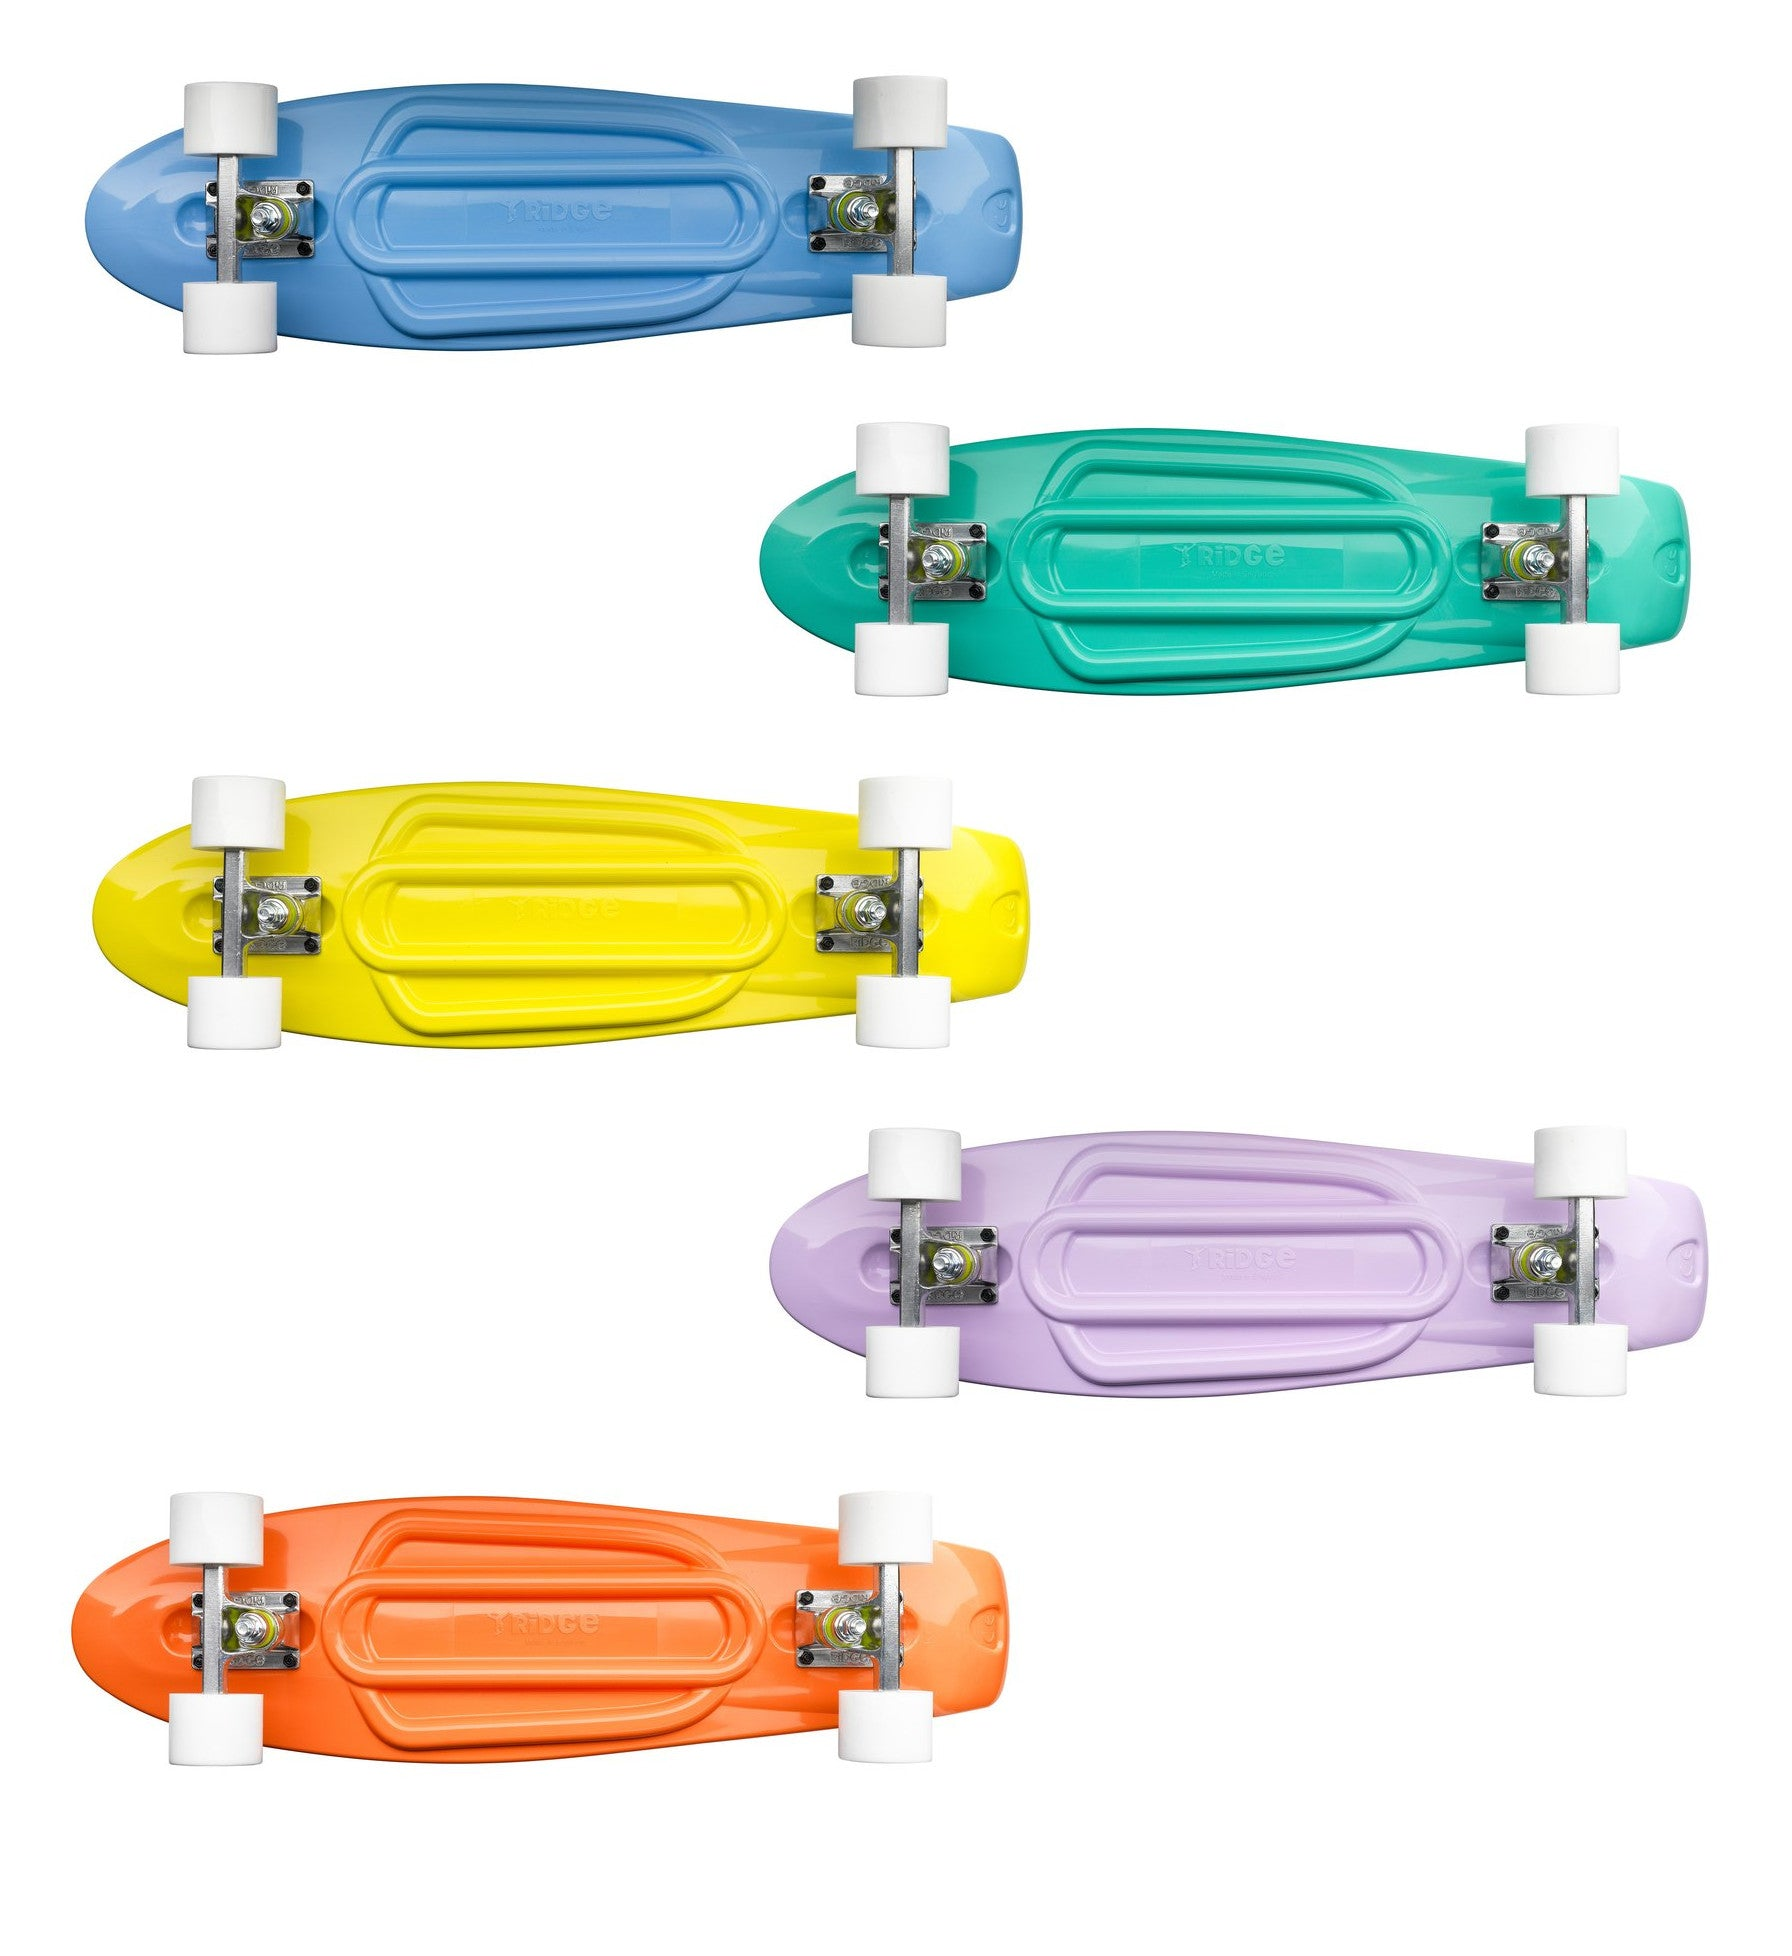 "Ridge 27"" Pastels Mini Cruiser complete board in 5 light Pantone shades"